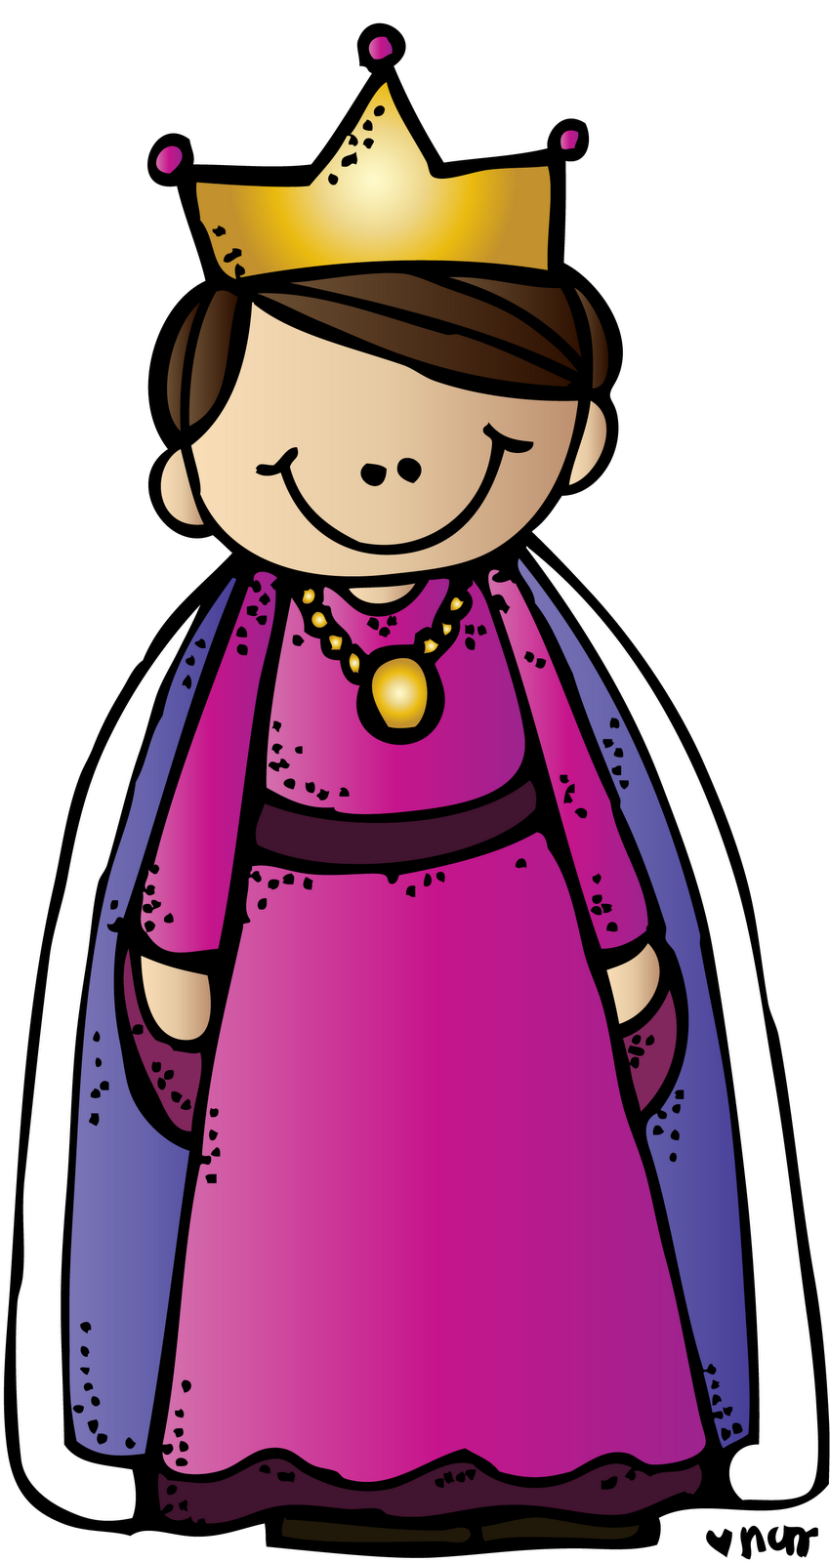 King clipart picture freeuse download Best King Clipart #15079 - Clipartion.com picture freeuse download